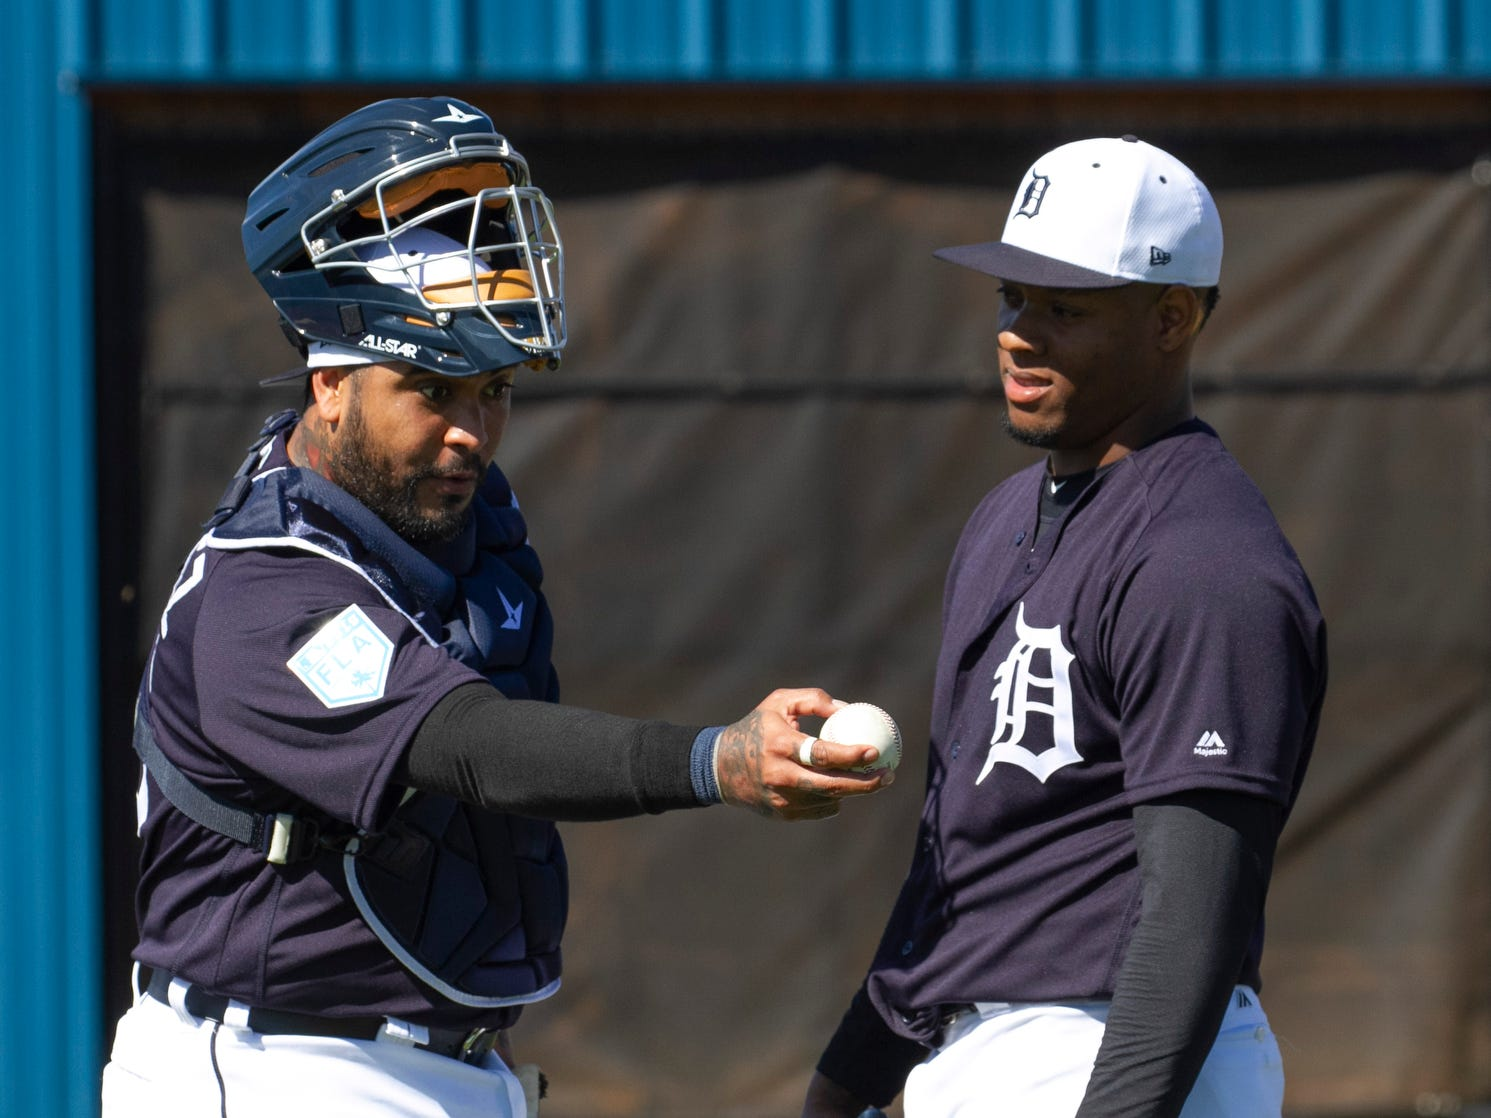 Detroit Tigers catcher Hector Sanchez, left, and pitcher Gregory Soto talk after Sanchez caught for Soto in a bullpen session.